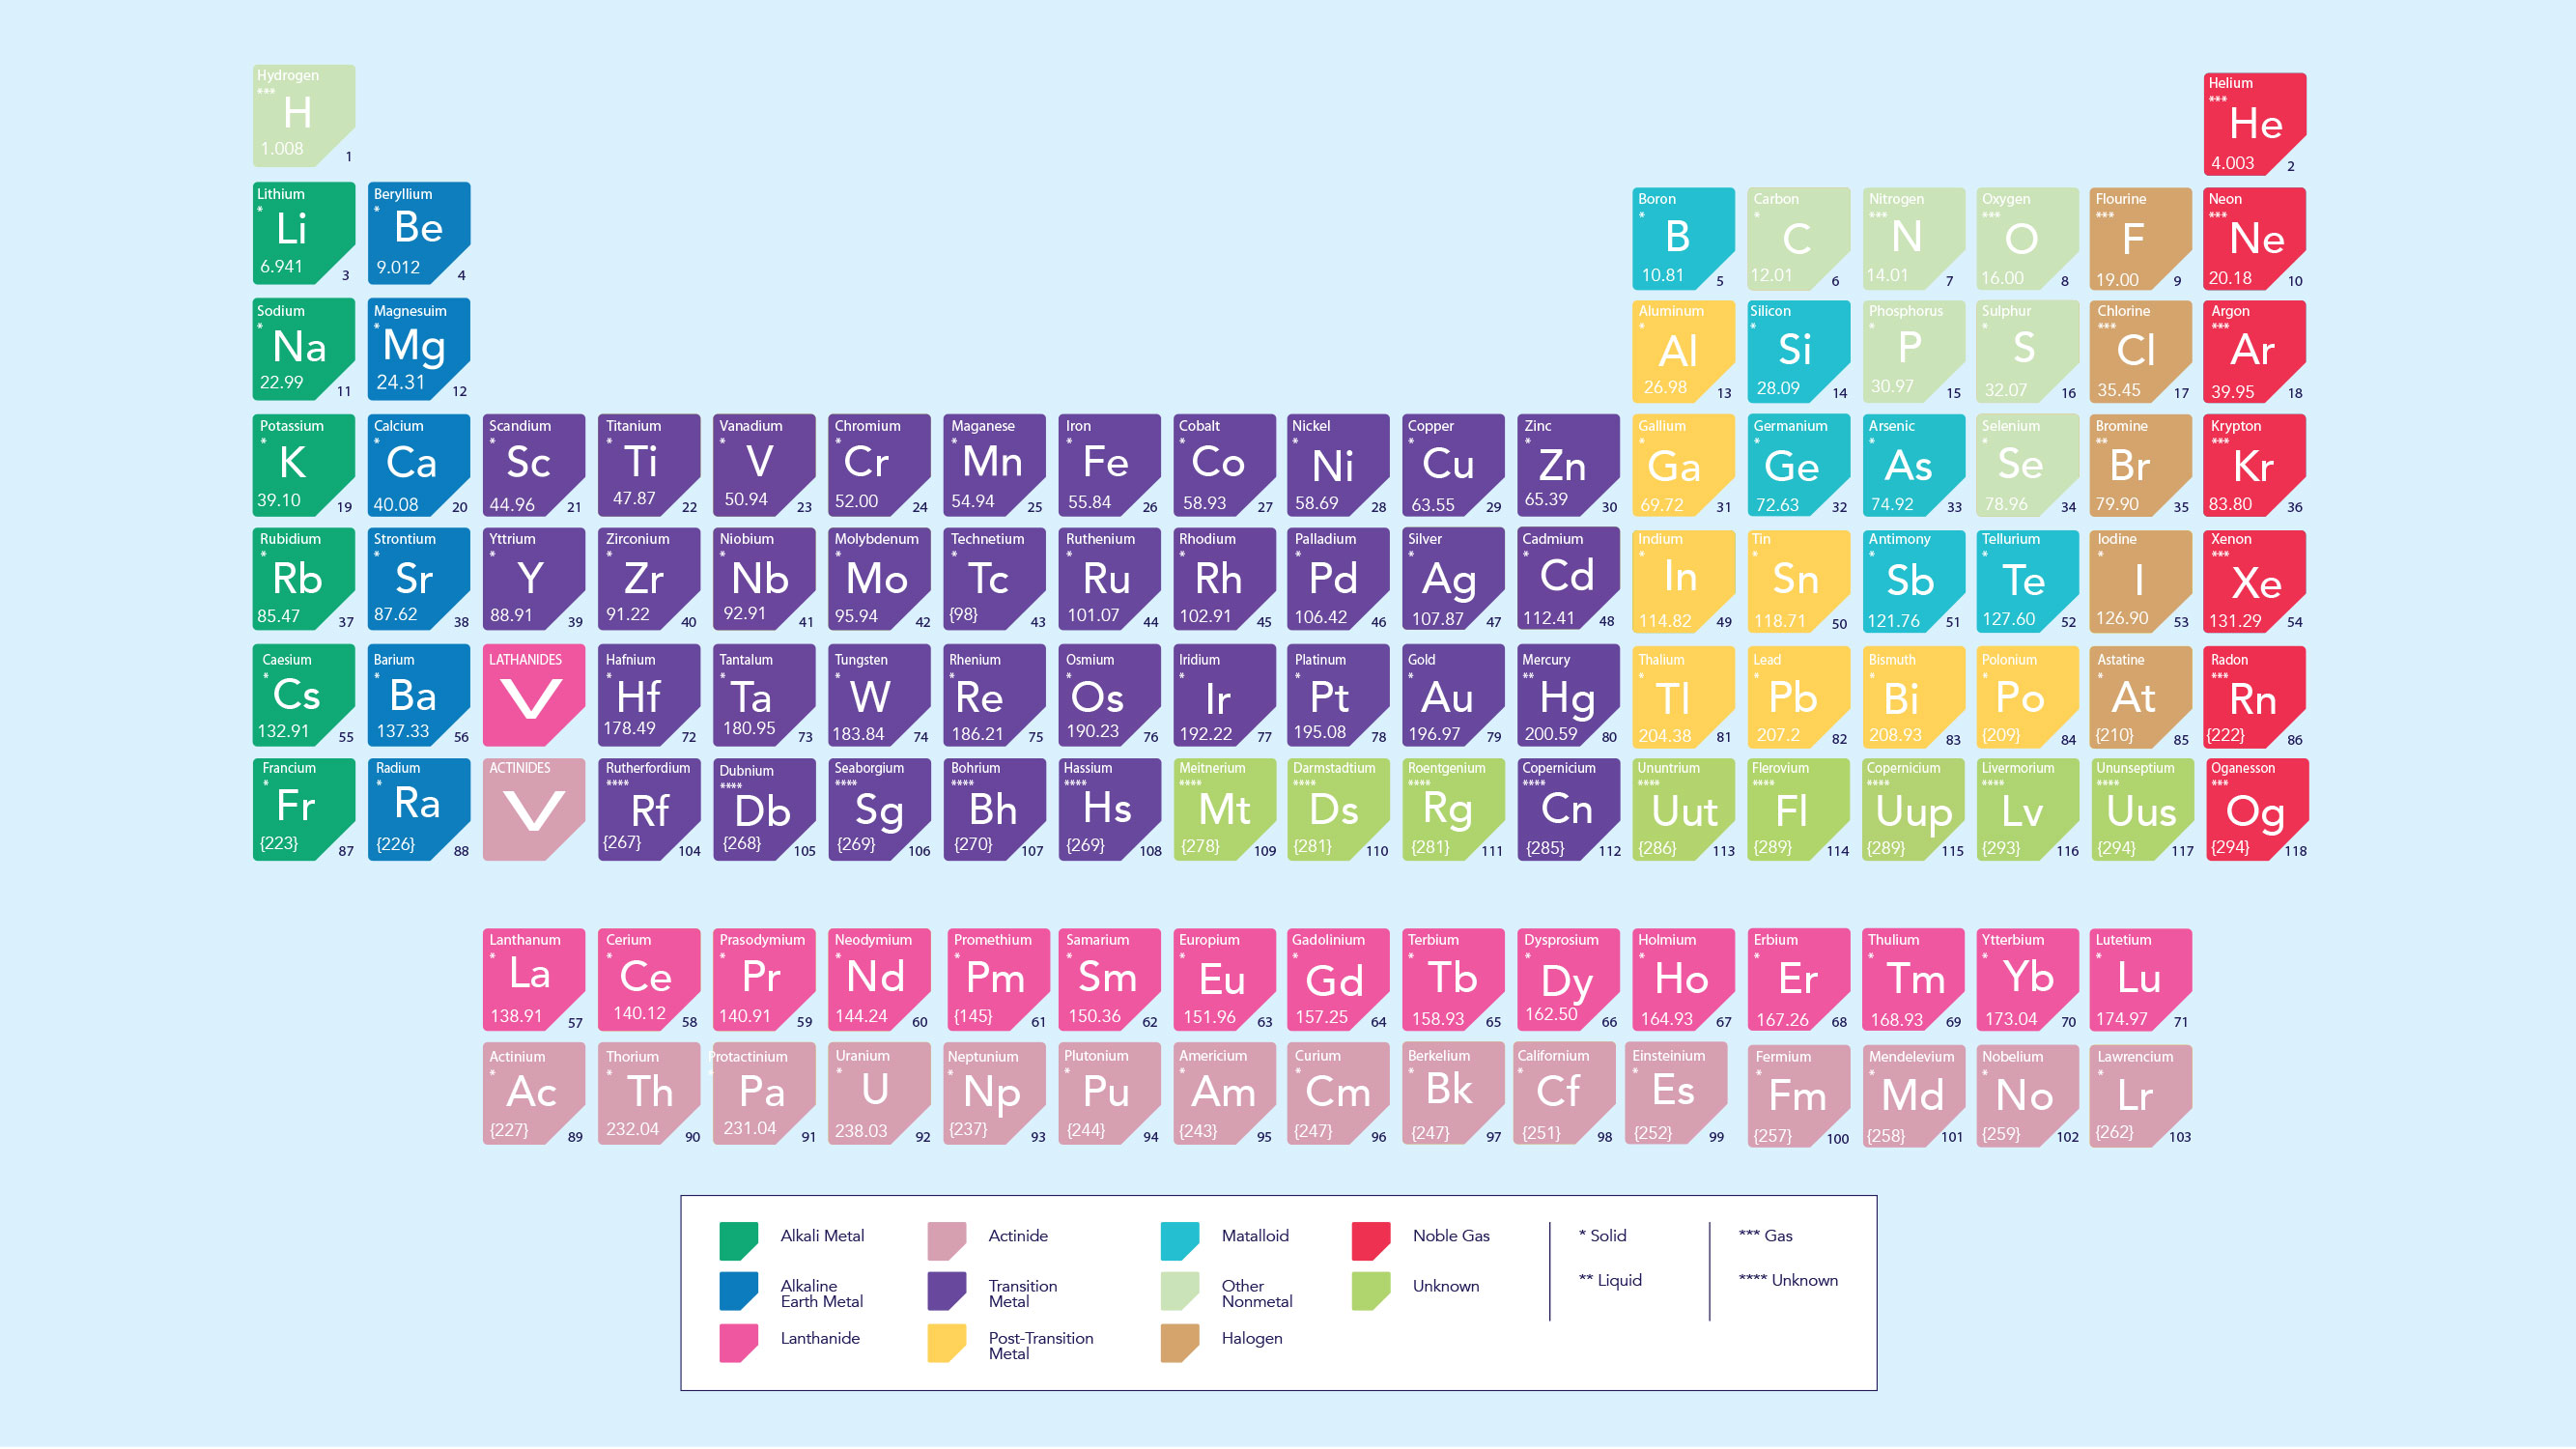 / Vs Cation Vs Anion Definition Chart And The Periodic Table